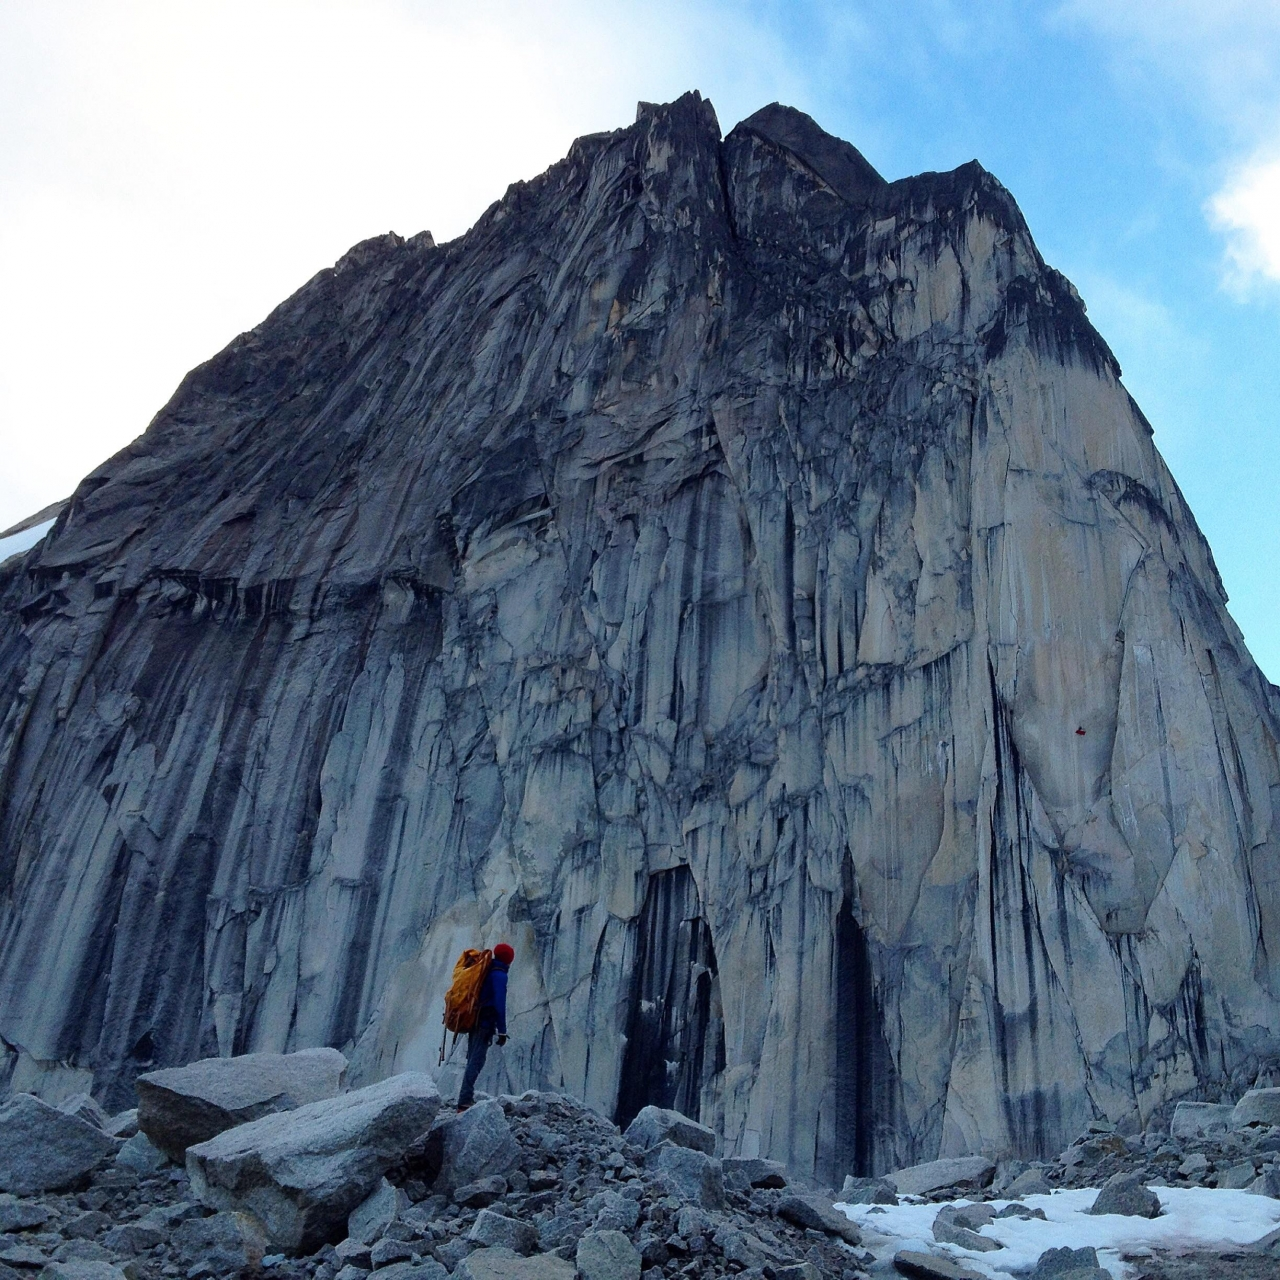 A picture from Bugaboos by Maxim Ropes